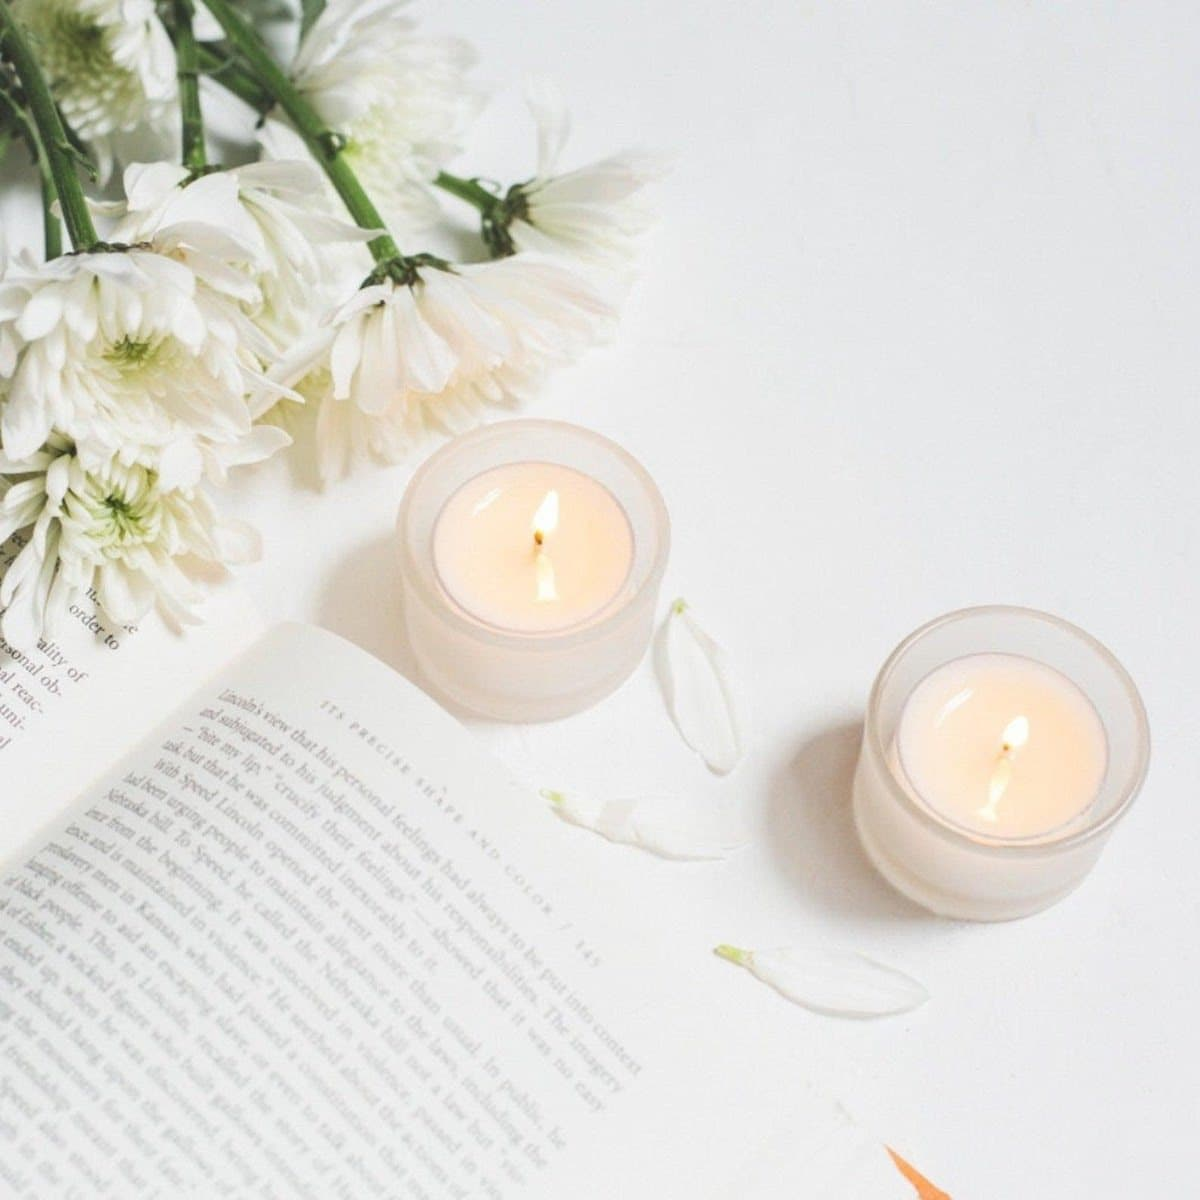 Unscented soy tealight candles from Aphantri Tealights, on Etsy